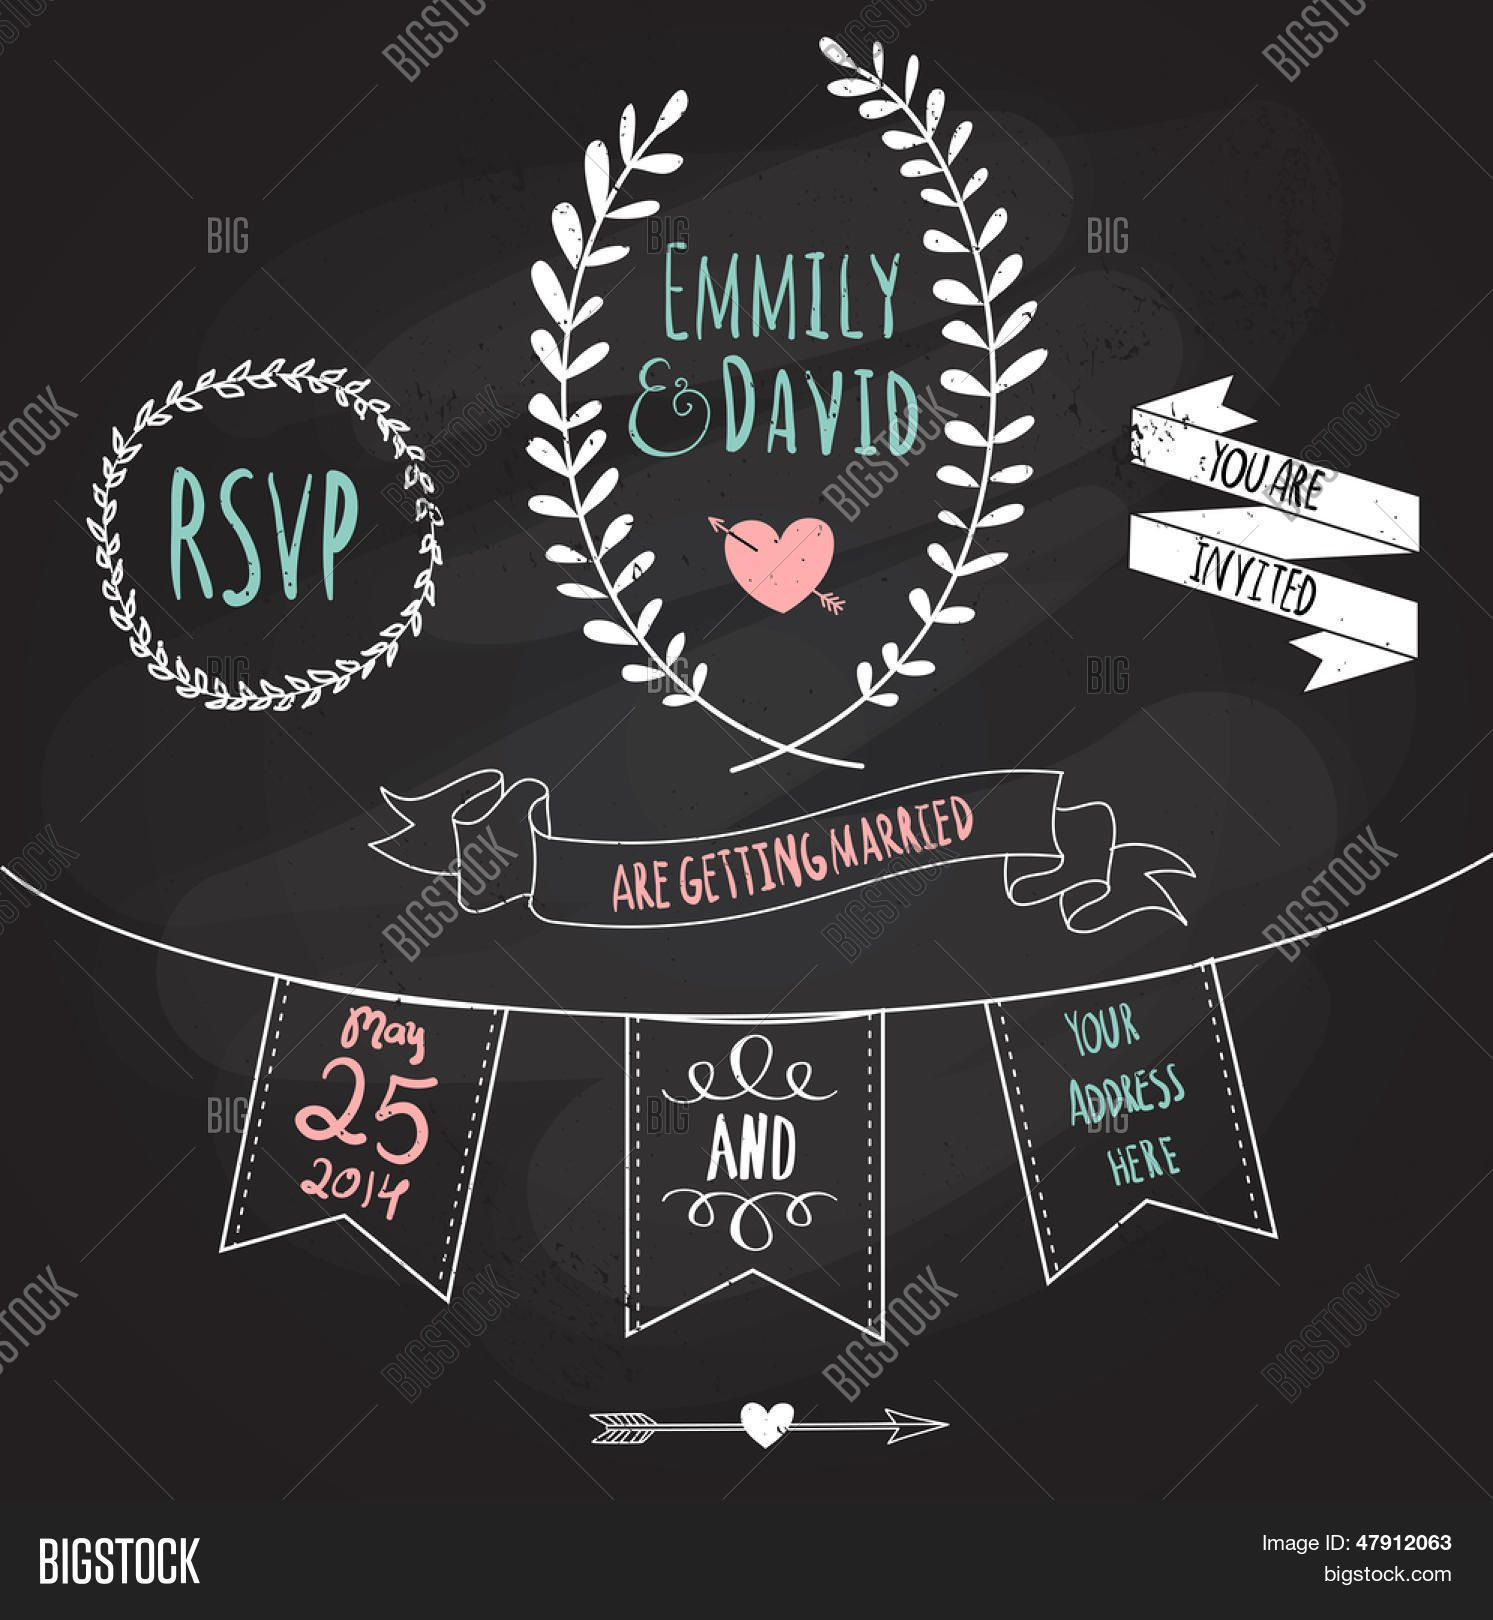 003 Simple Chalkboard Invitation Template Free Sample  Birthday DownloadFull